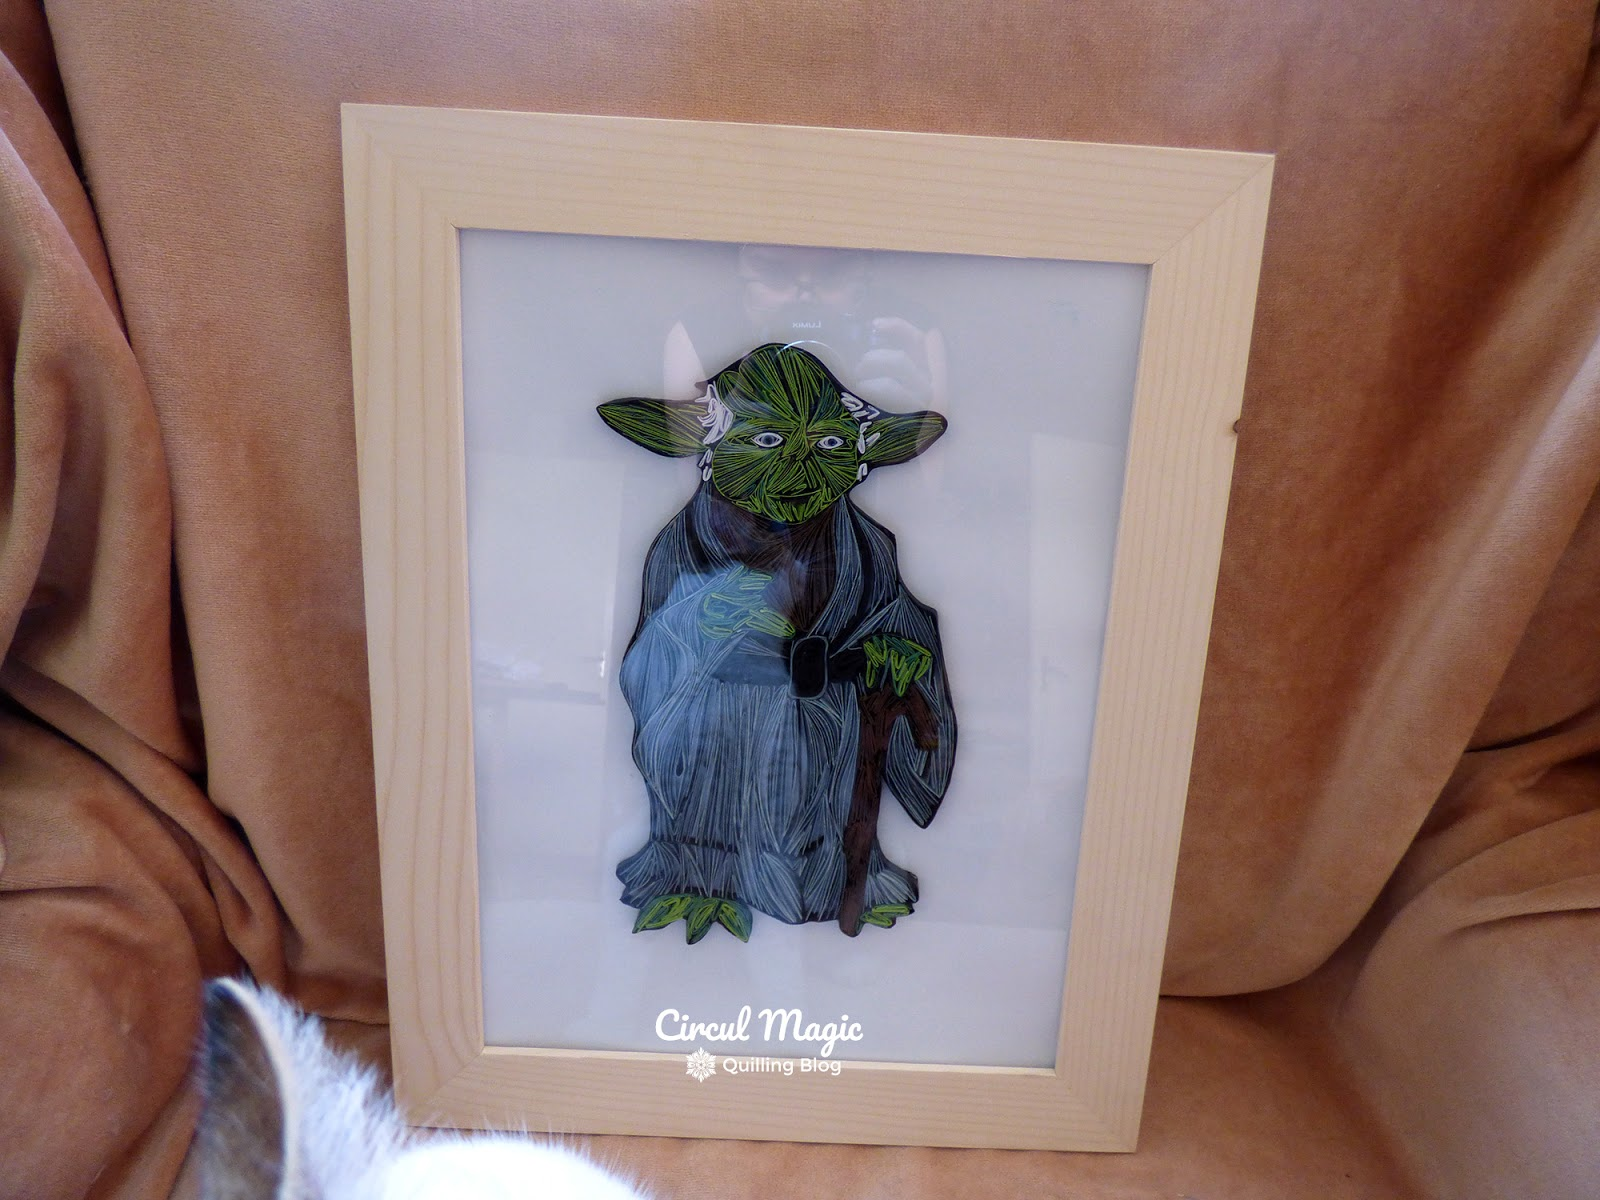 Tablou Handmade Quilling Yoda - Seria Personaje Star Wars - Circul Magic